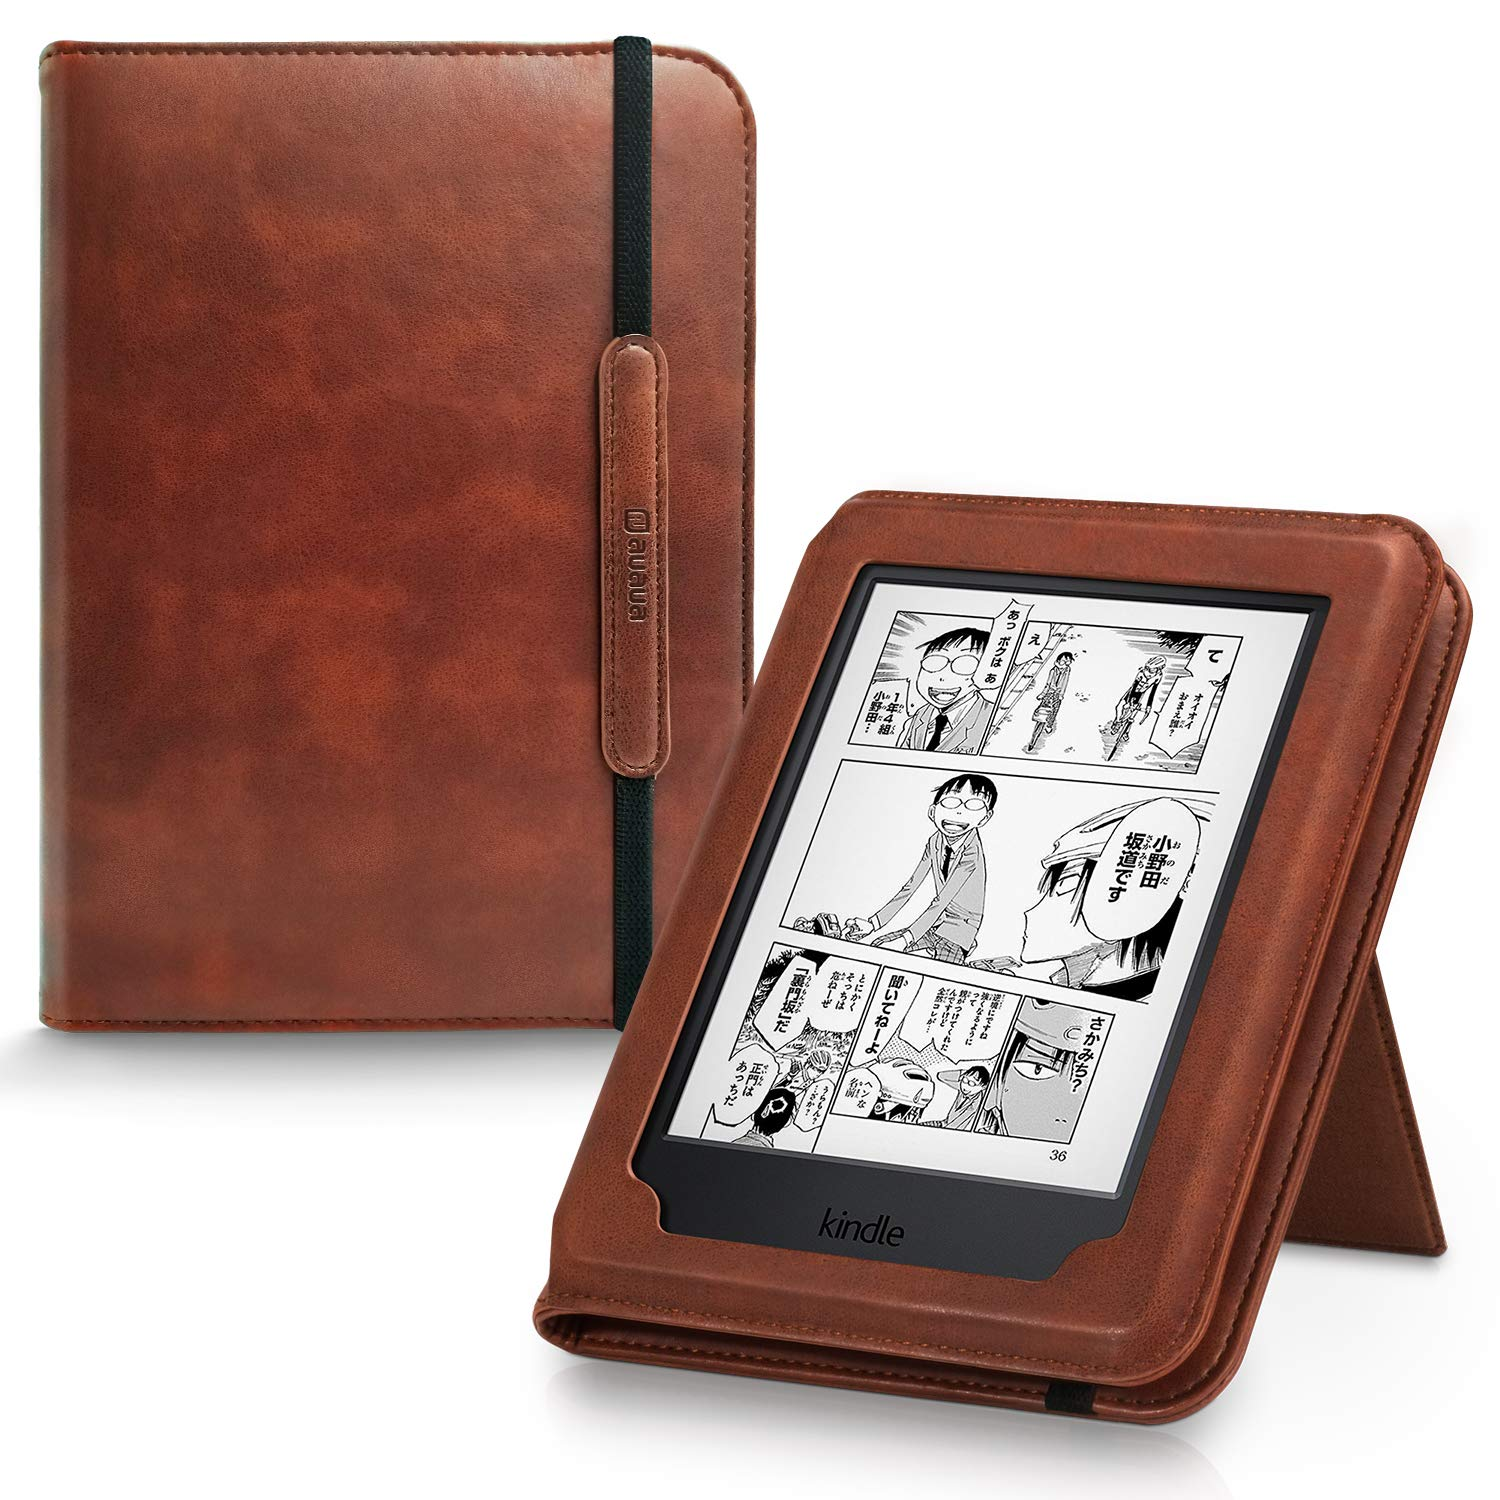 AUAUA Kindle Paperwhite Case -With Card Slot Hand Strap PU Leather Cover Perfectly Fit all-new Amazon Kindle Paperwhite (Fits all 2012, 2013, 2015 and 2016 Versions) (Card Slot,Brown)